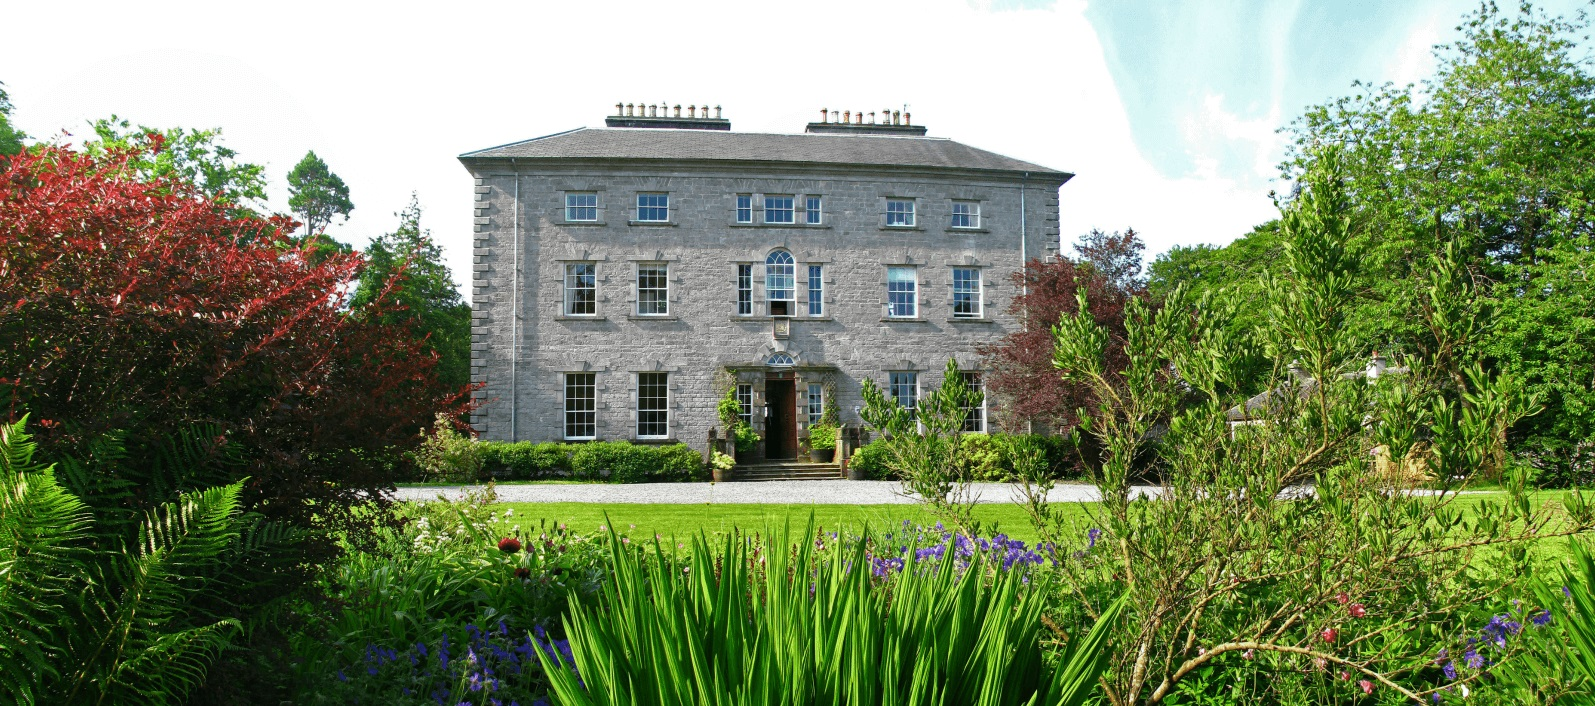 Coopershill House, Co. Sligo